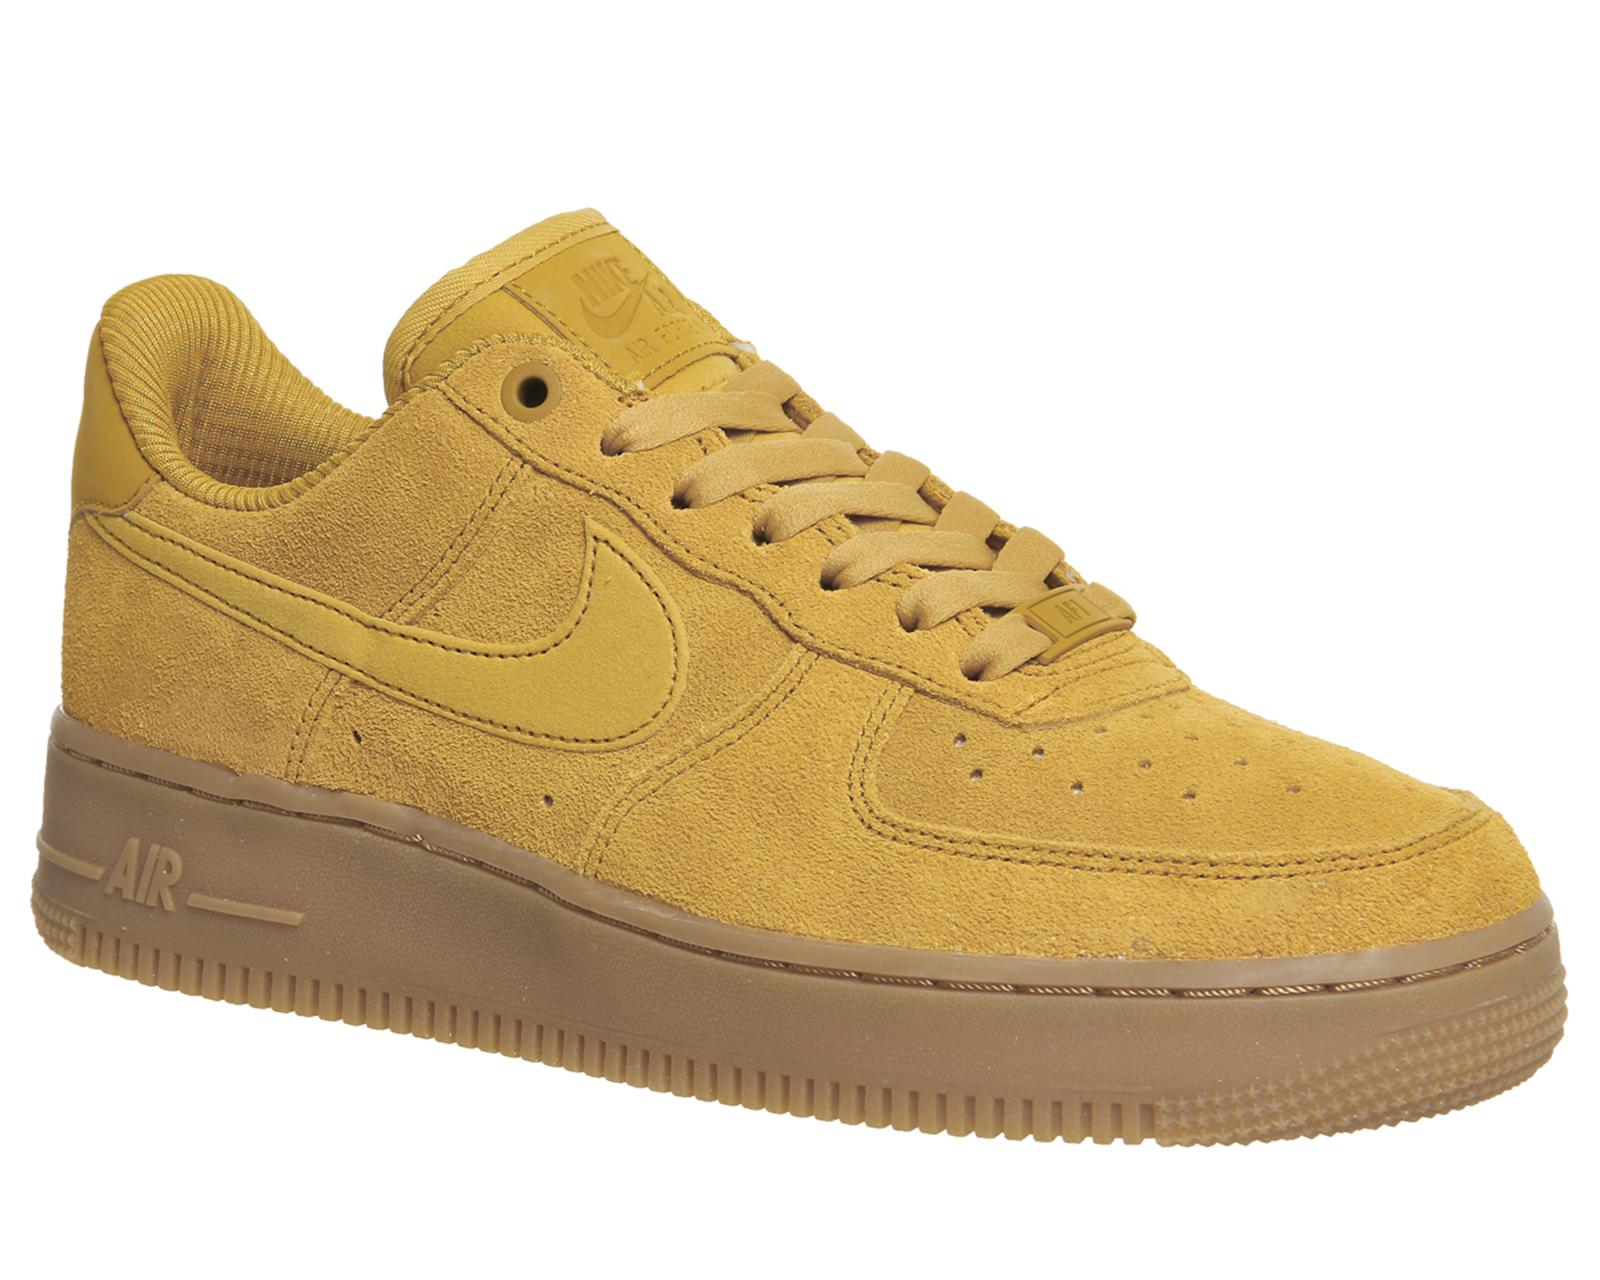 Nike Suede Air Force 1 07 Trainers in